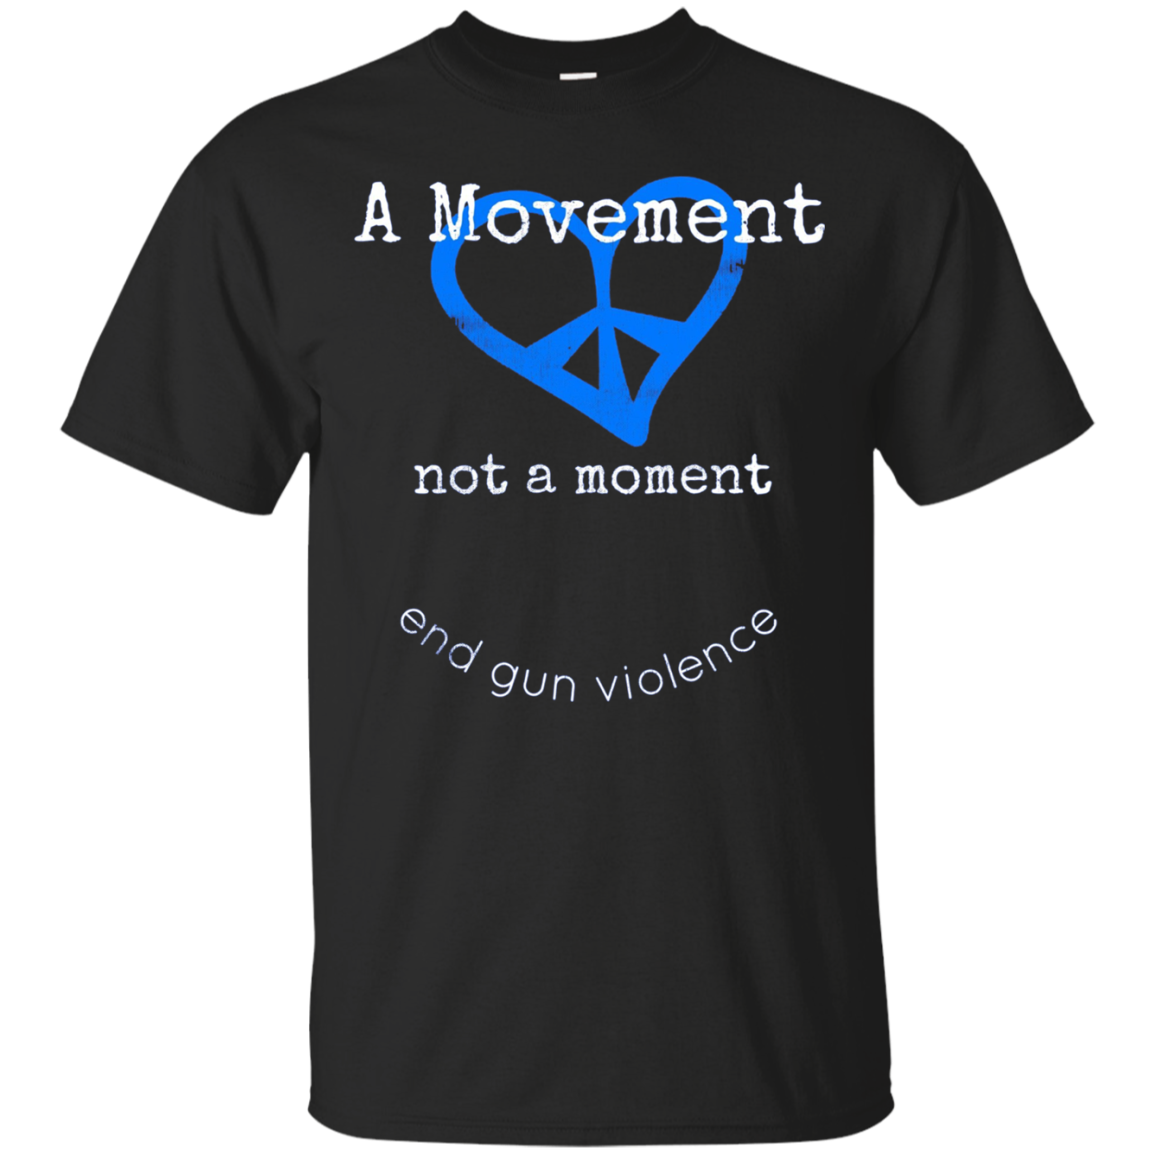 Enough Long Sleeve Shirt 2018 - Movement not a Moment